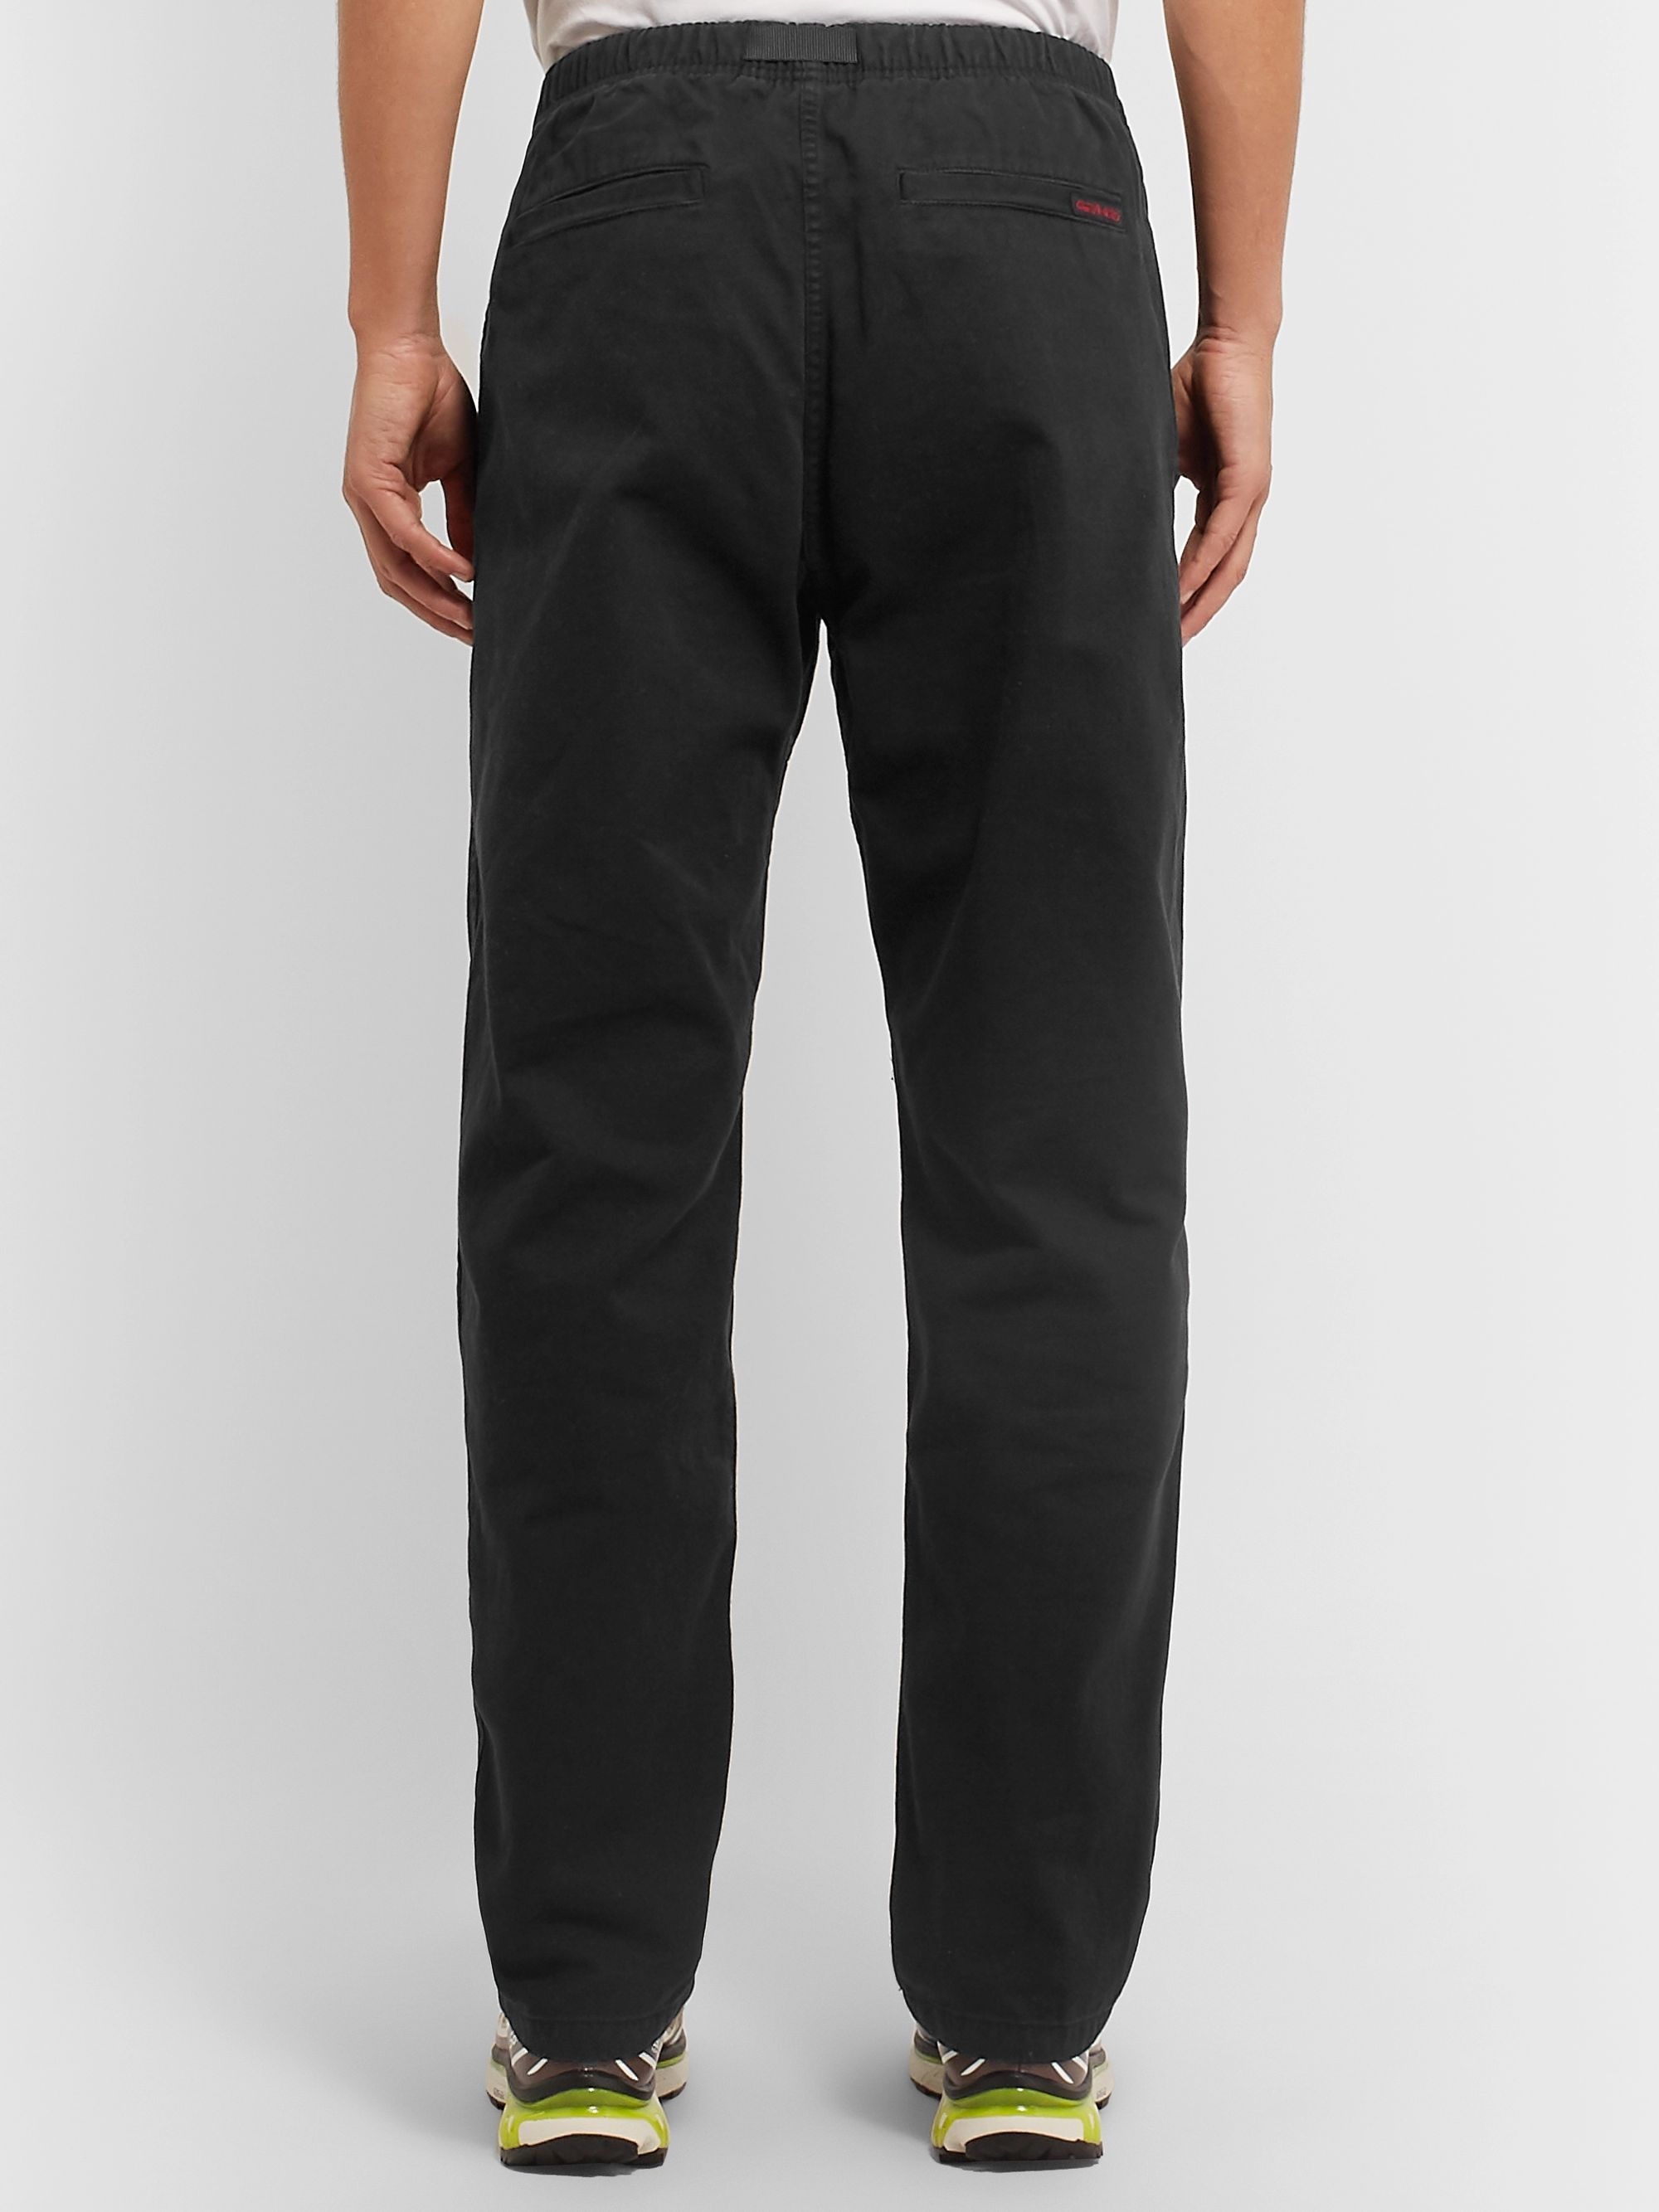 Gramicci Black Original G Belted Garment-Dyed Cotton-Twill Trousers